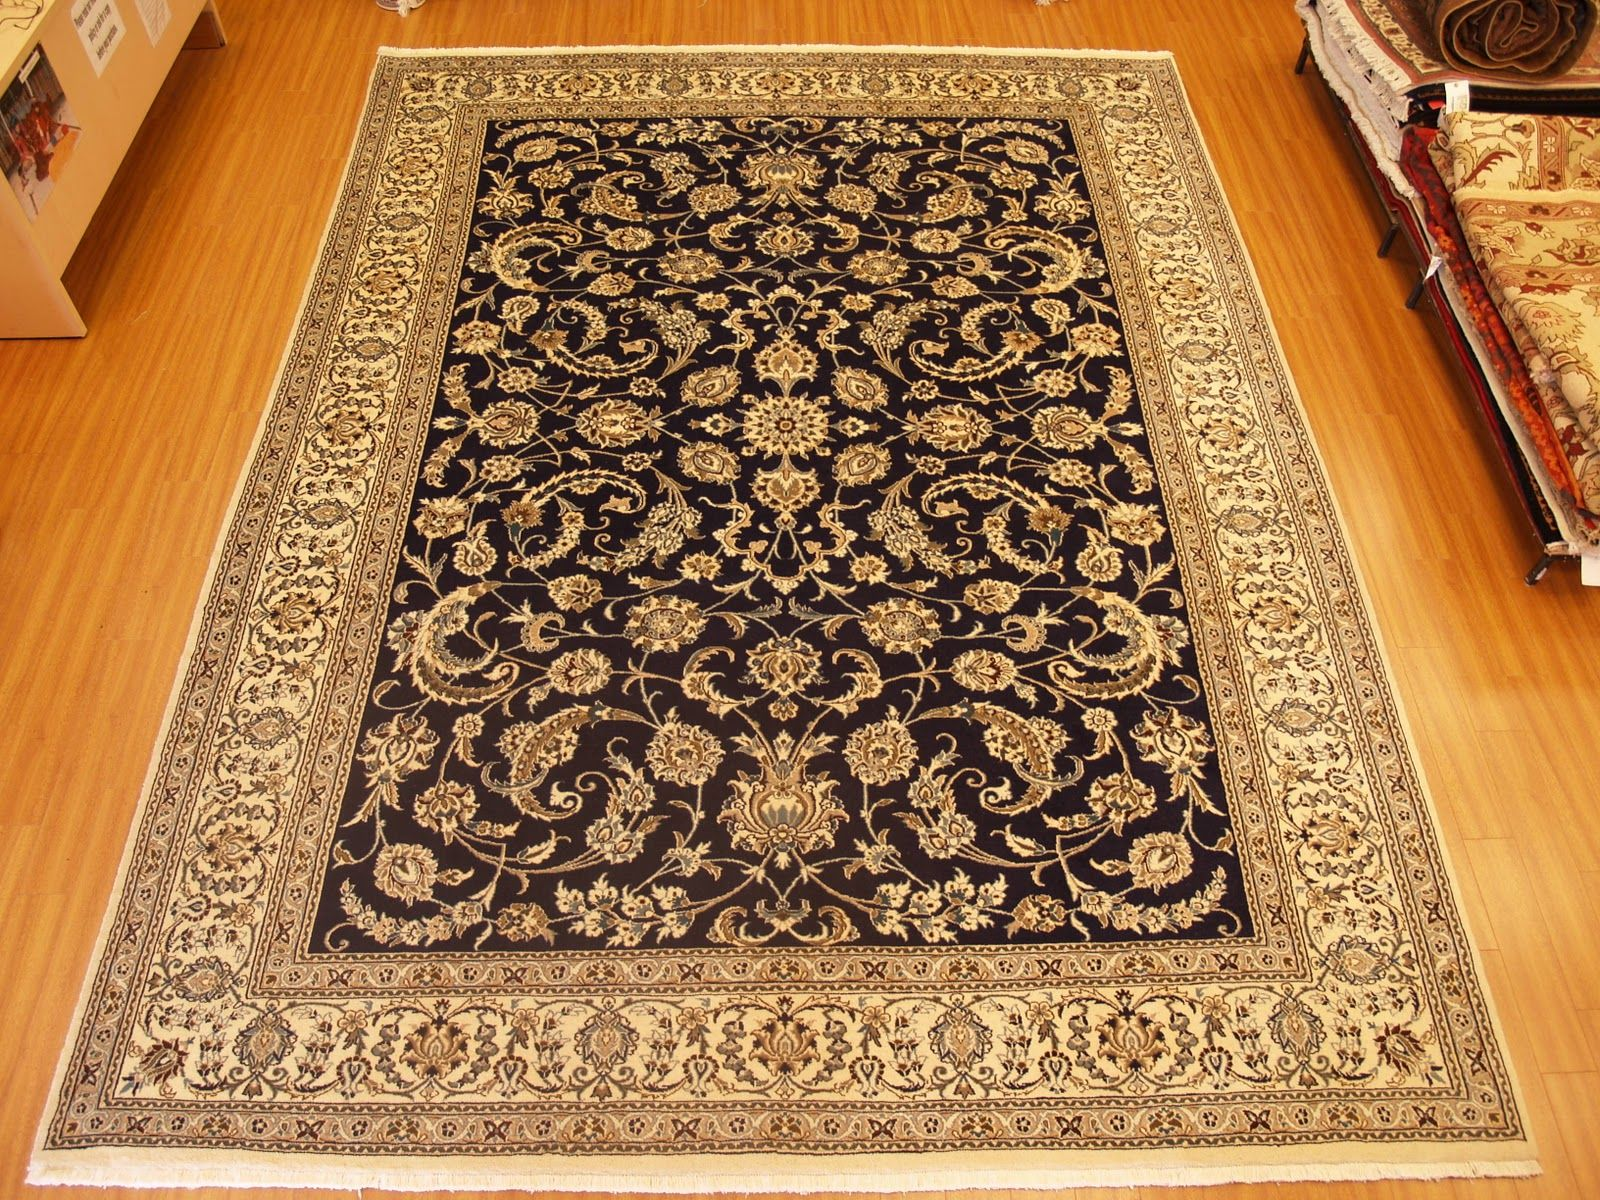 Great Carpet Designs With Home Carpet Designs 53 540x444 ID14259 .